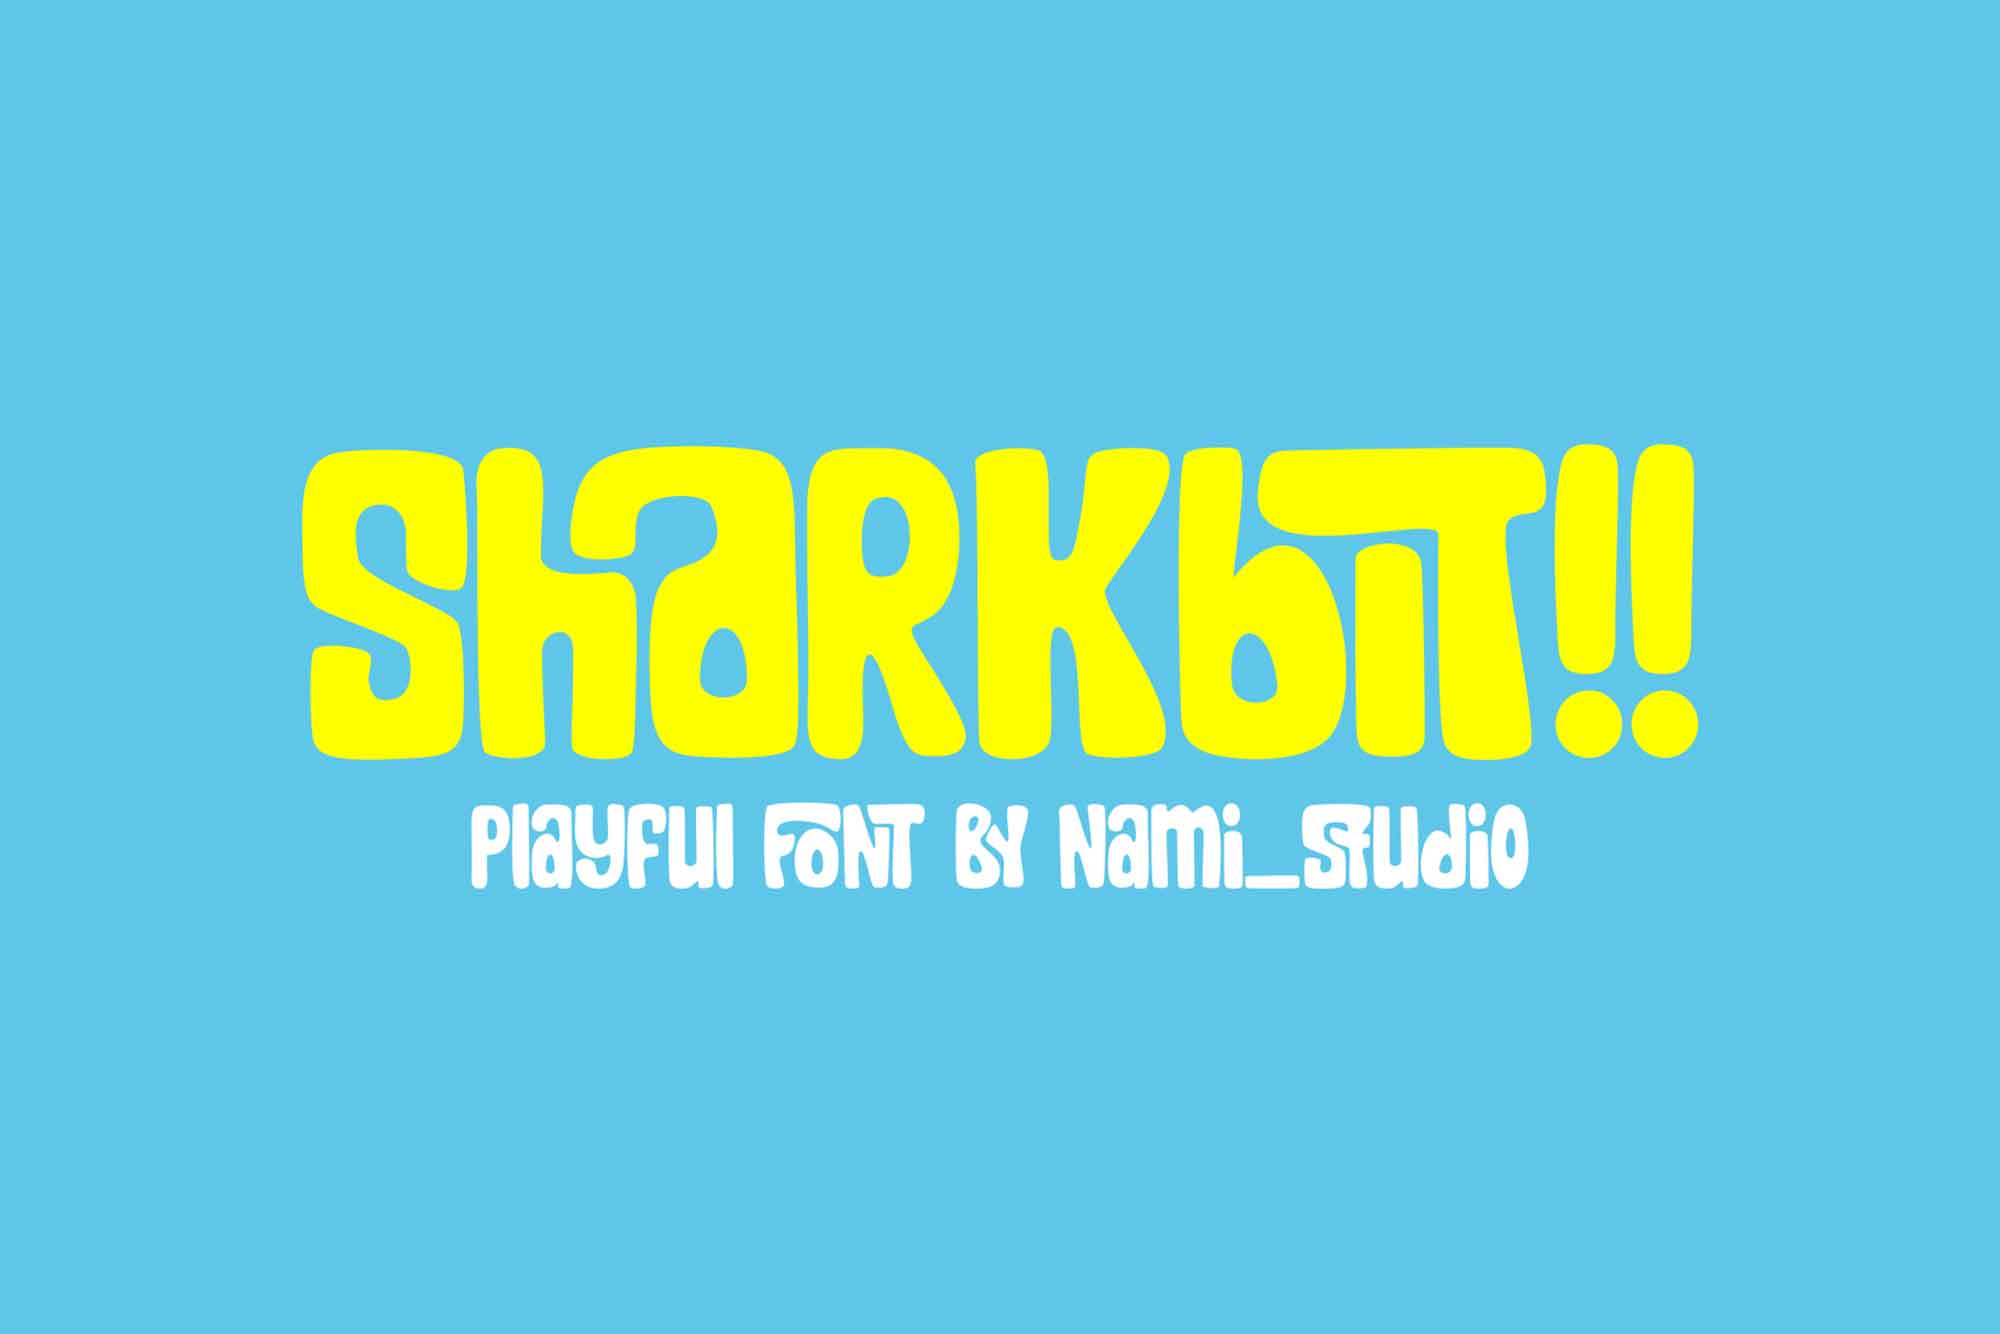 Sharkbit Display Font